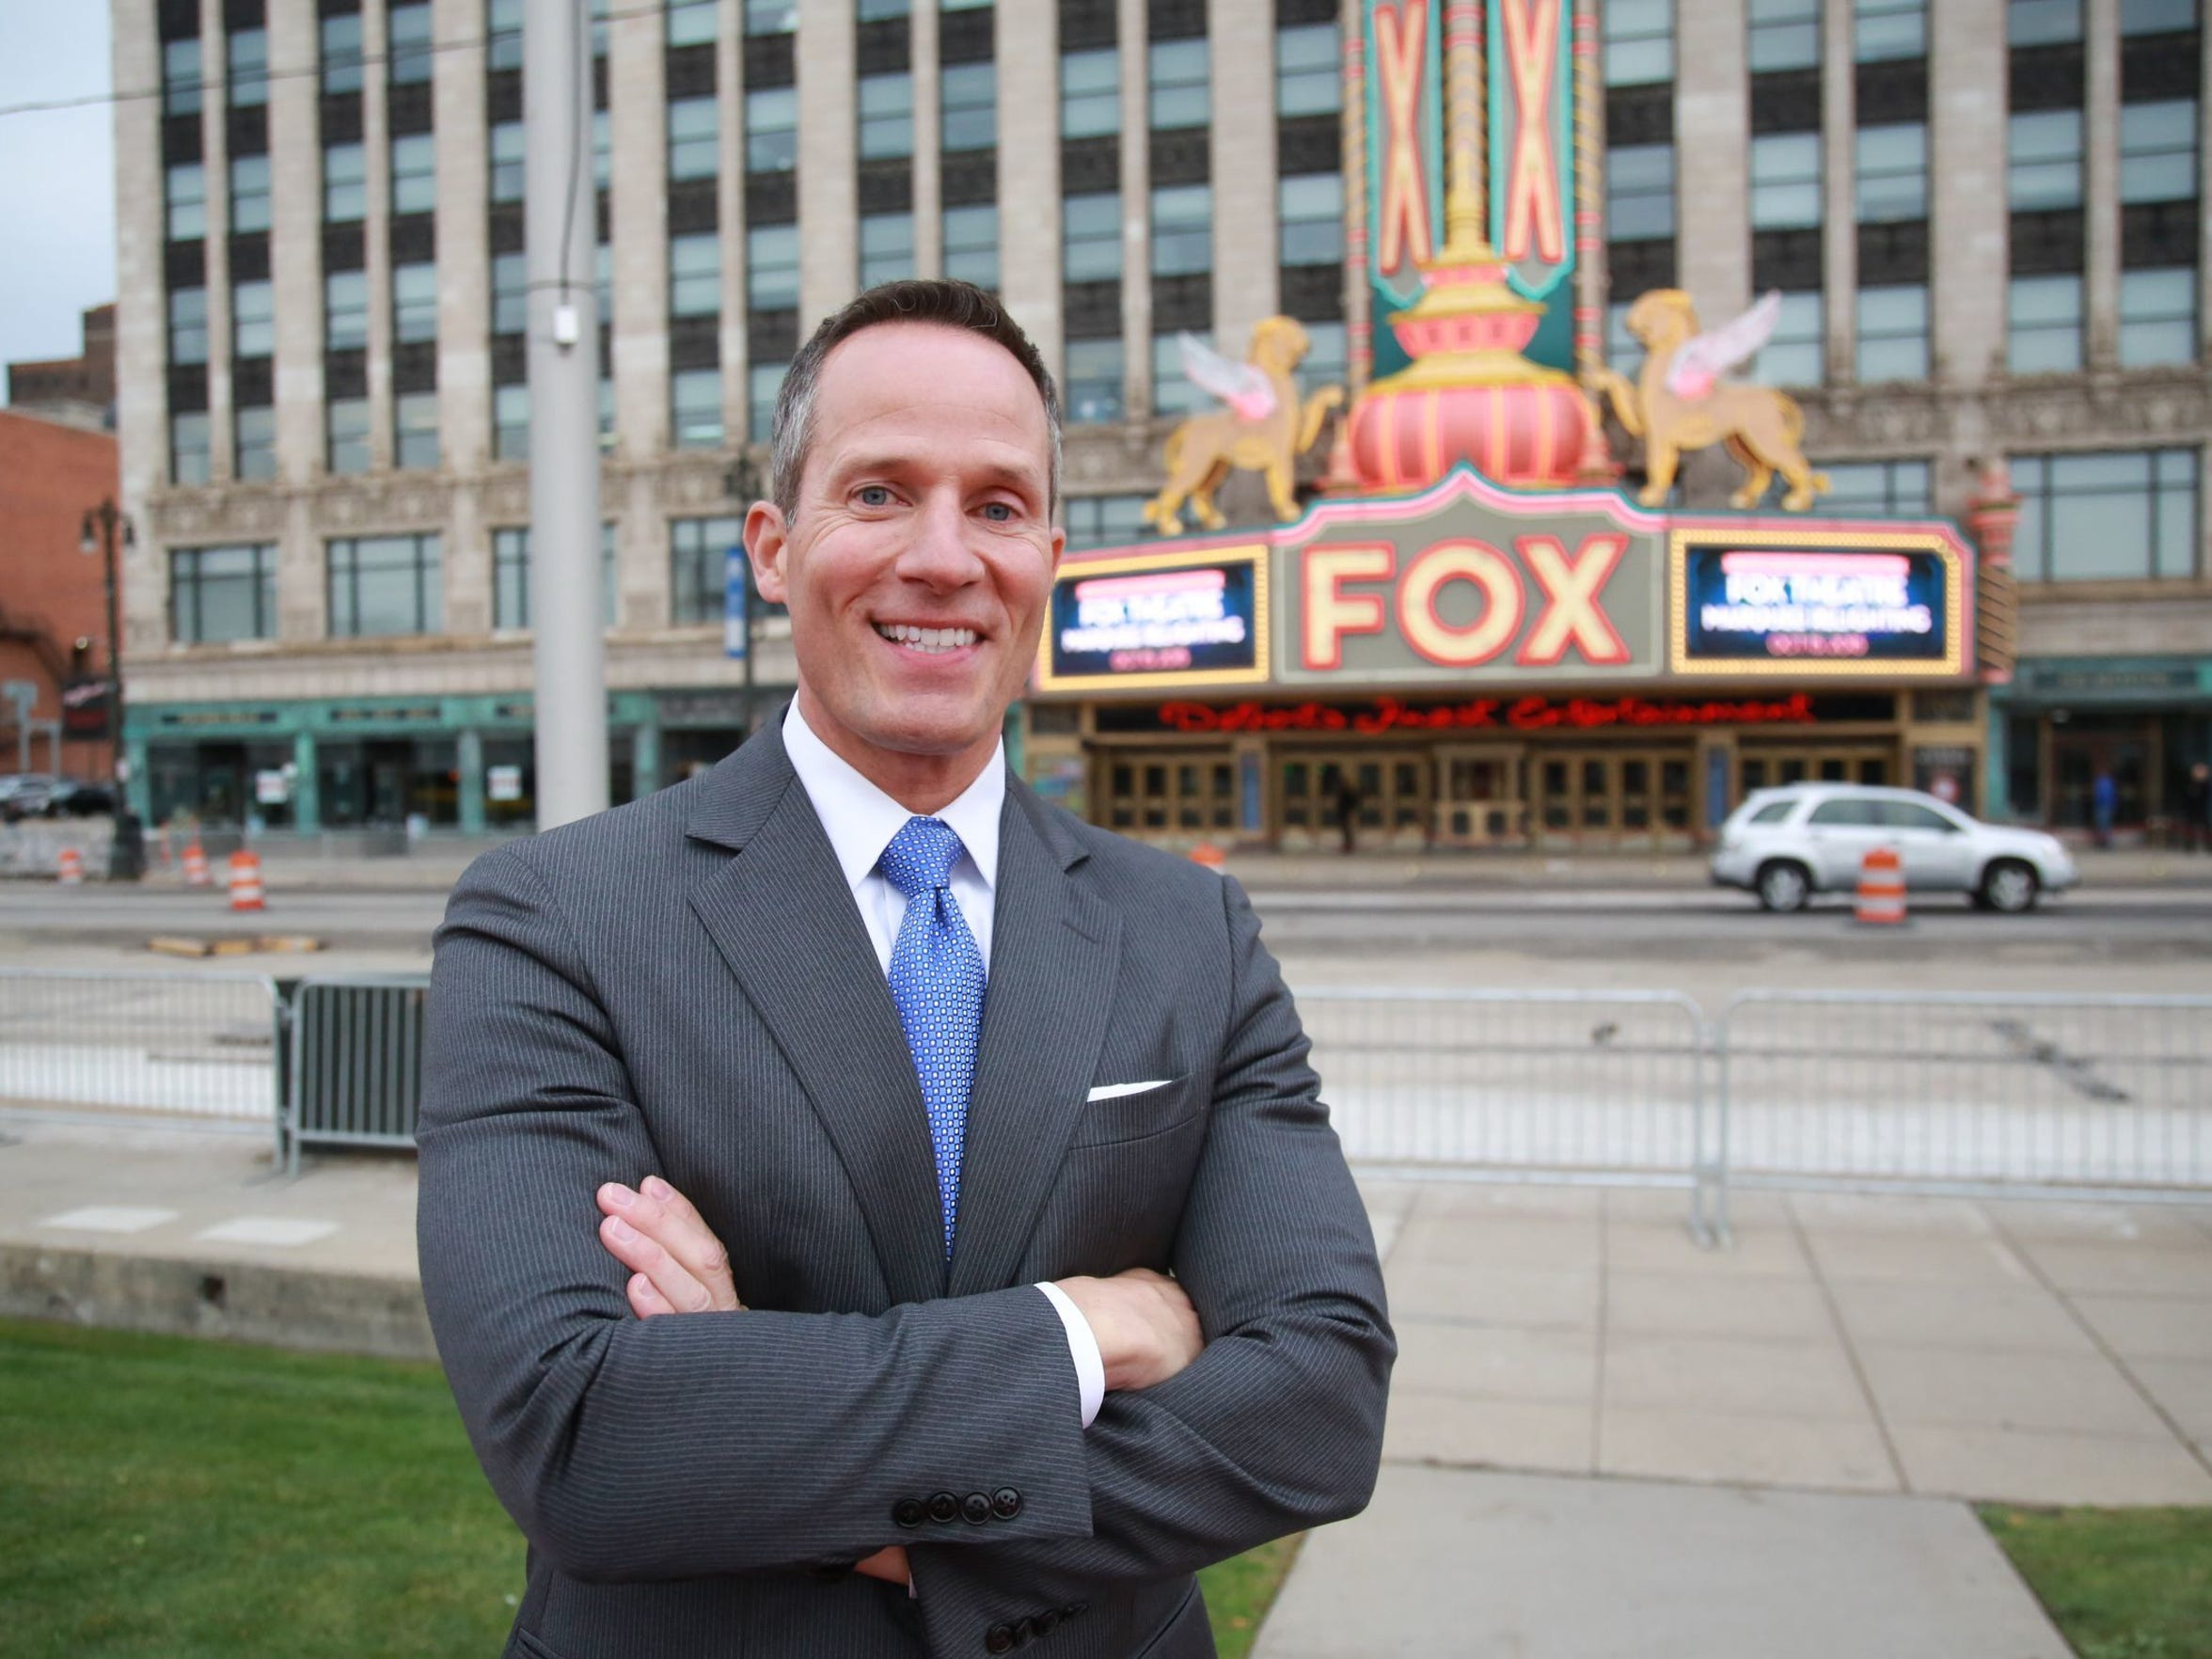 Chris Ilitch stands in front of the Fox Theatre marquee